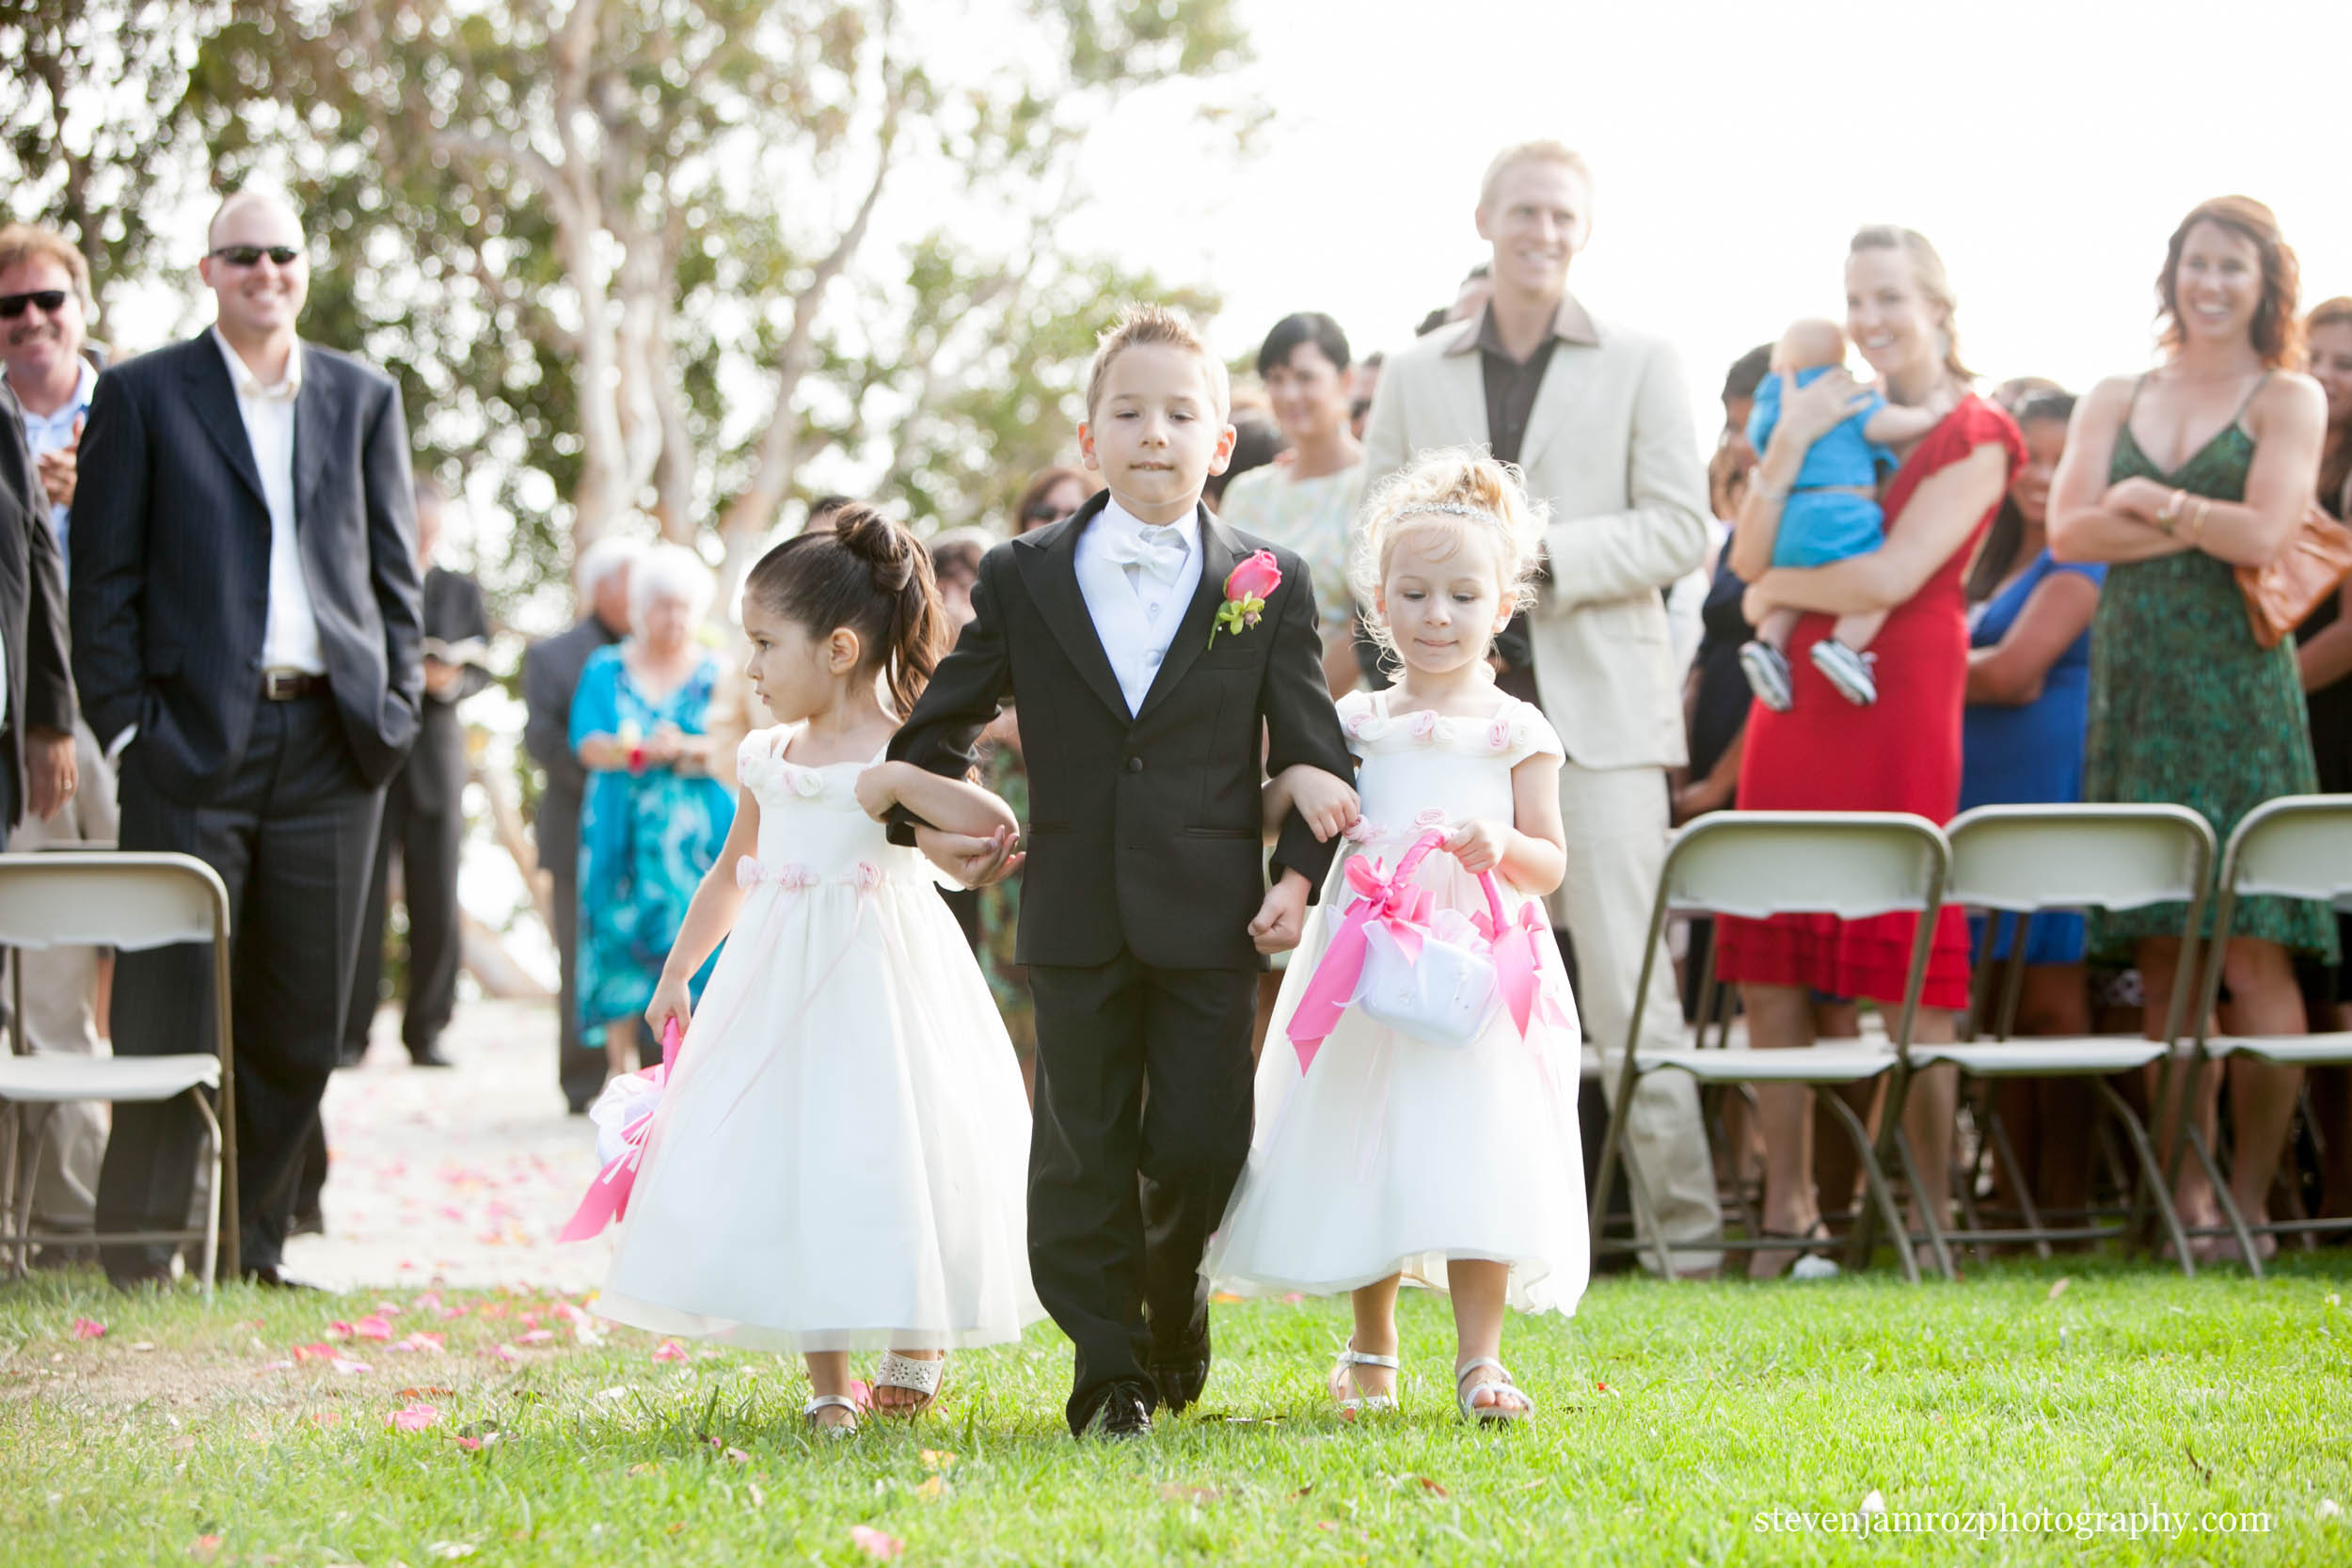 flower-girls-ringbearer-raleigh-steven-jamroz-photography-0274.jpg